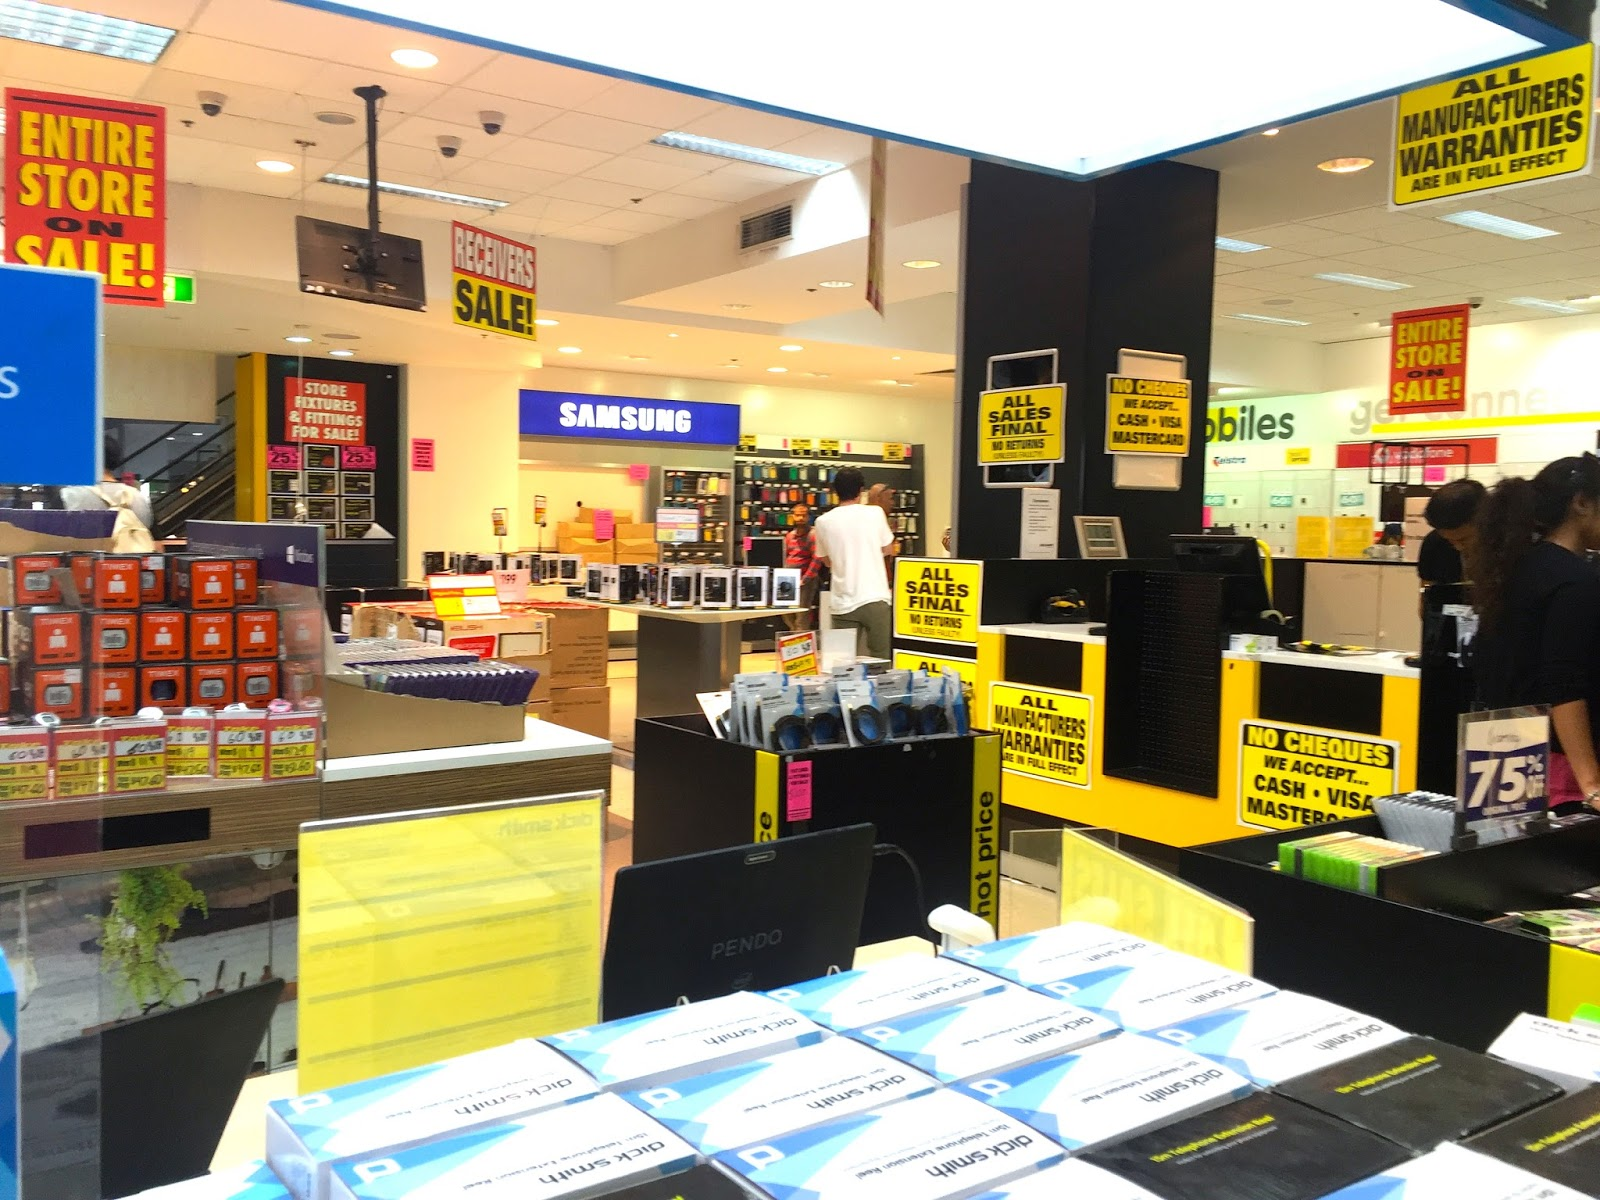 Dick smith stores melbourne